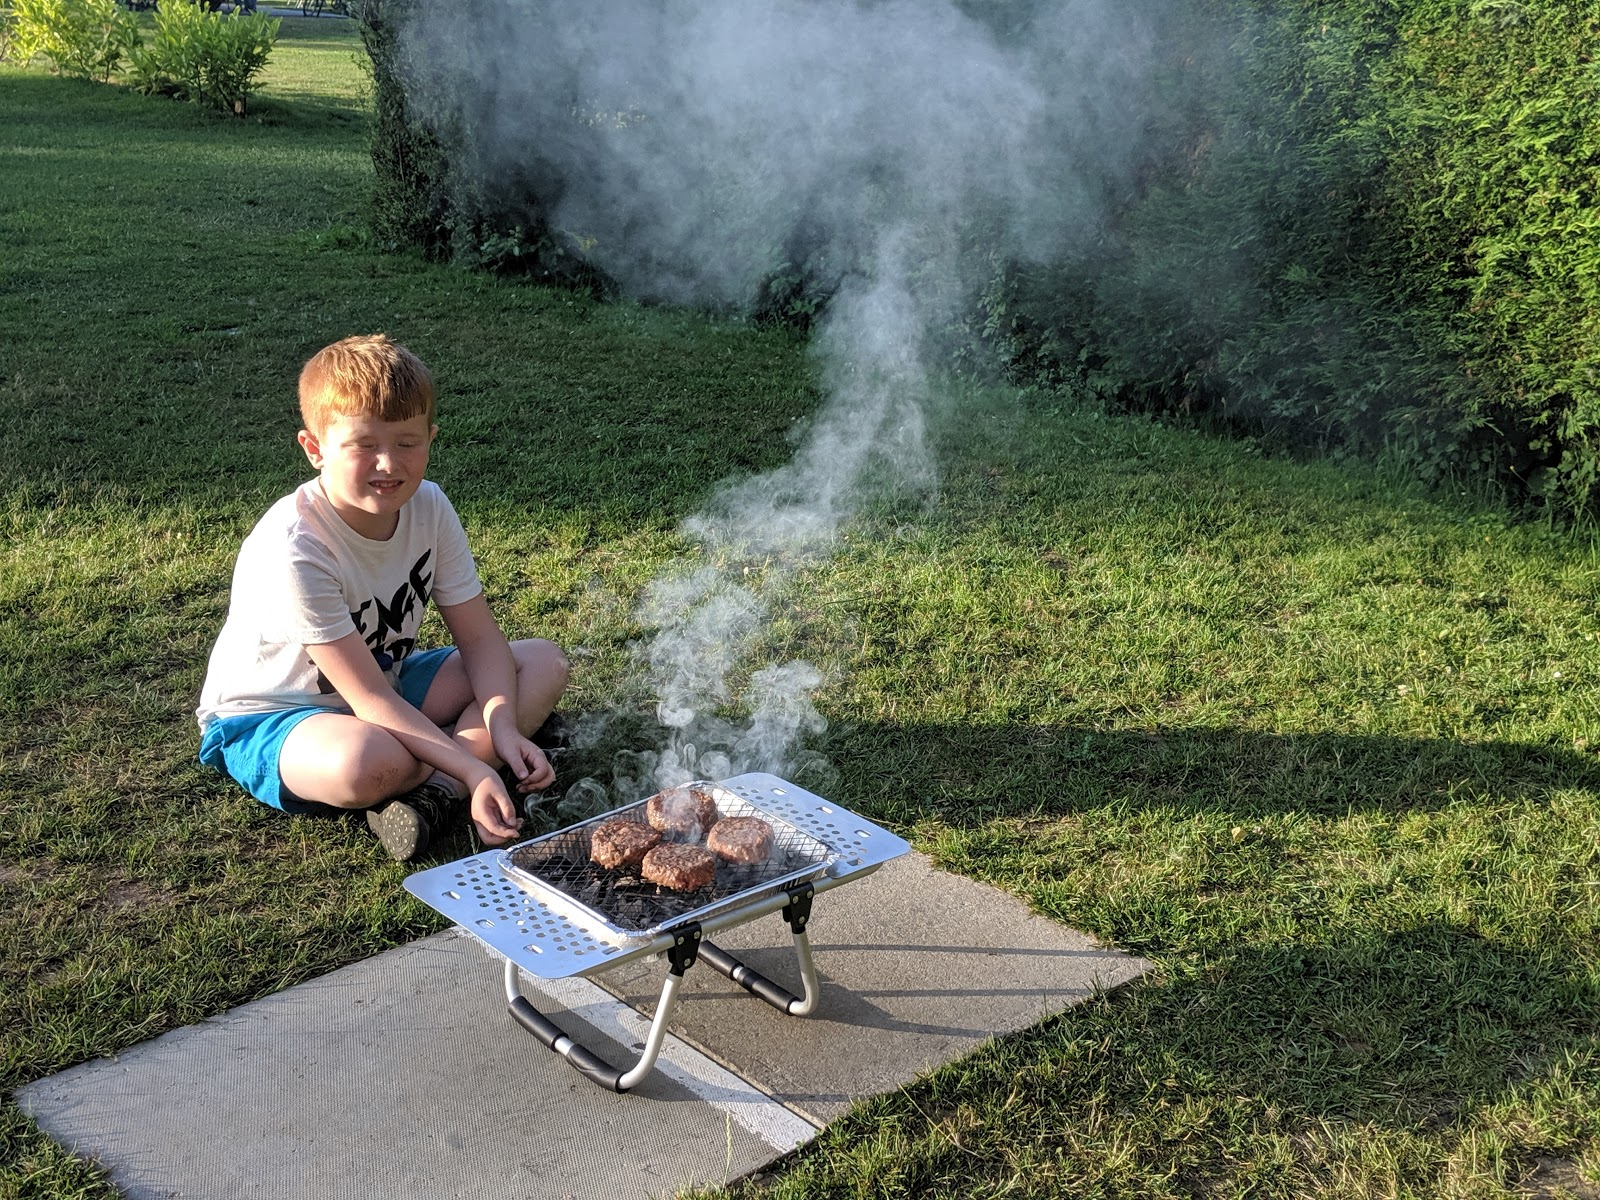 Ready Camp Horsley Review : Glamping near LEGOLAND and Chessington World of Adventures - BBQ area